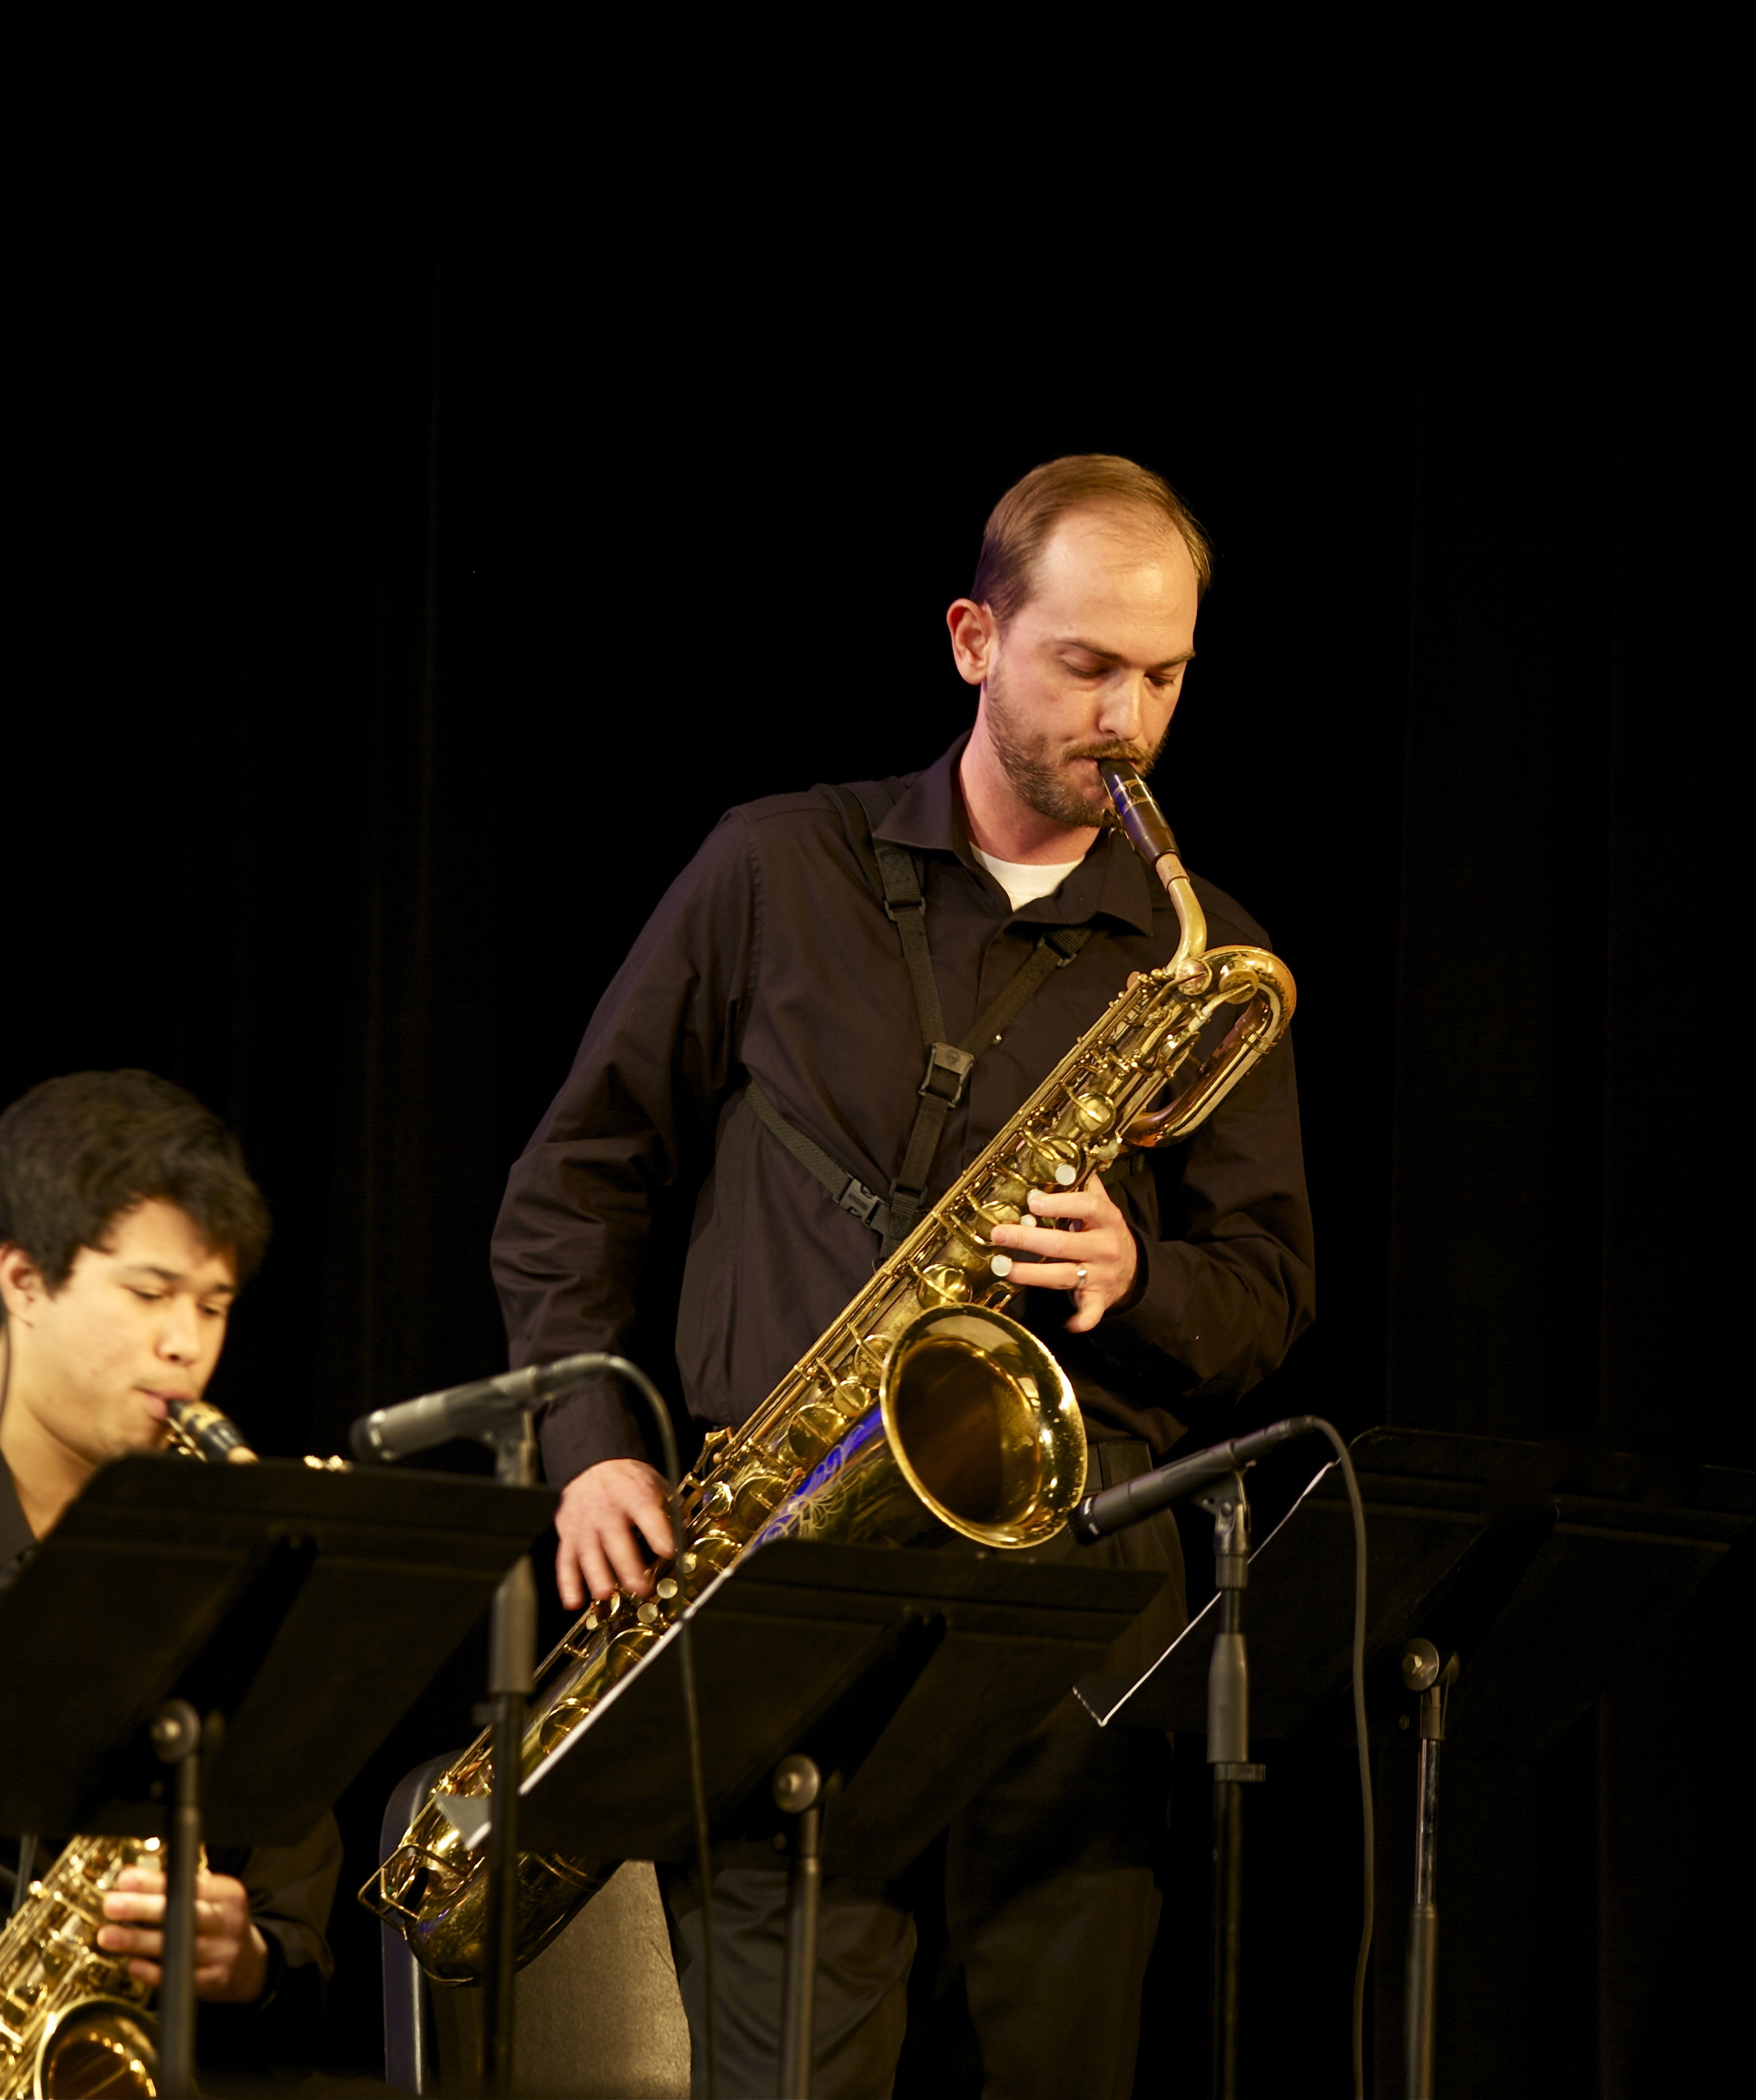 Paul Mathews, baritone saxophone